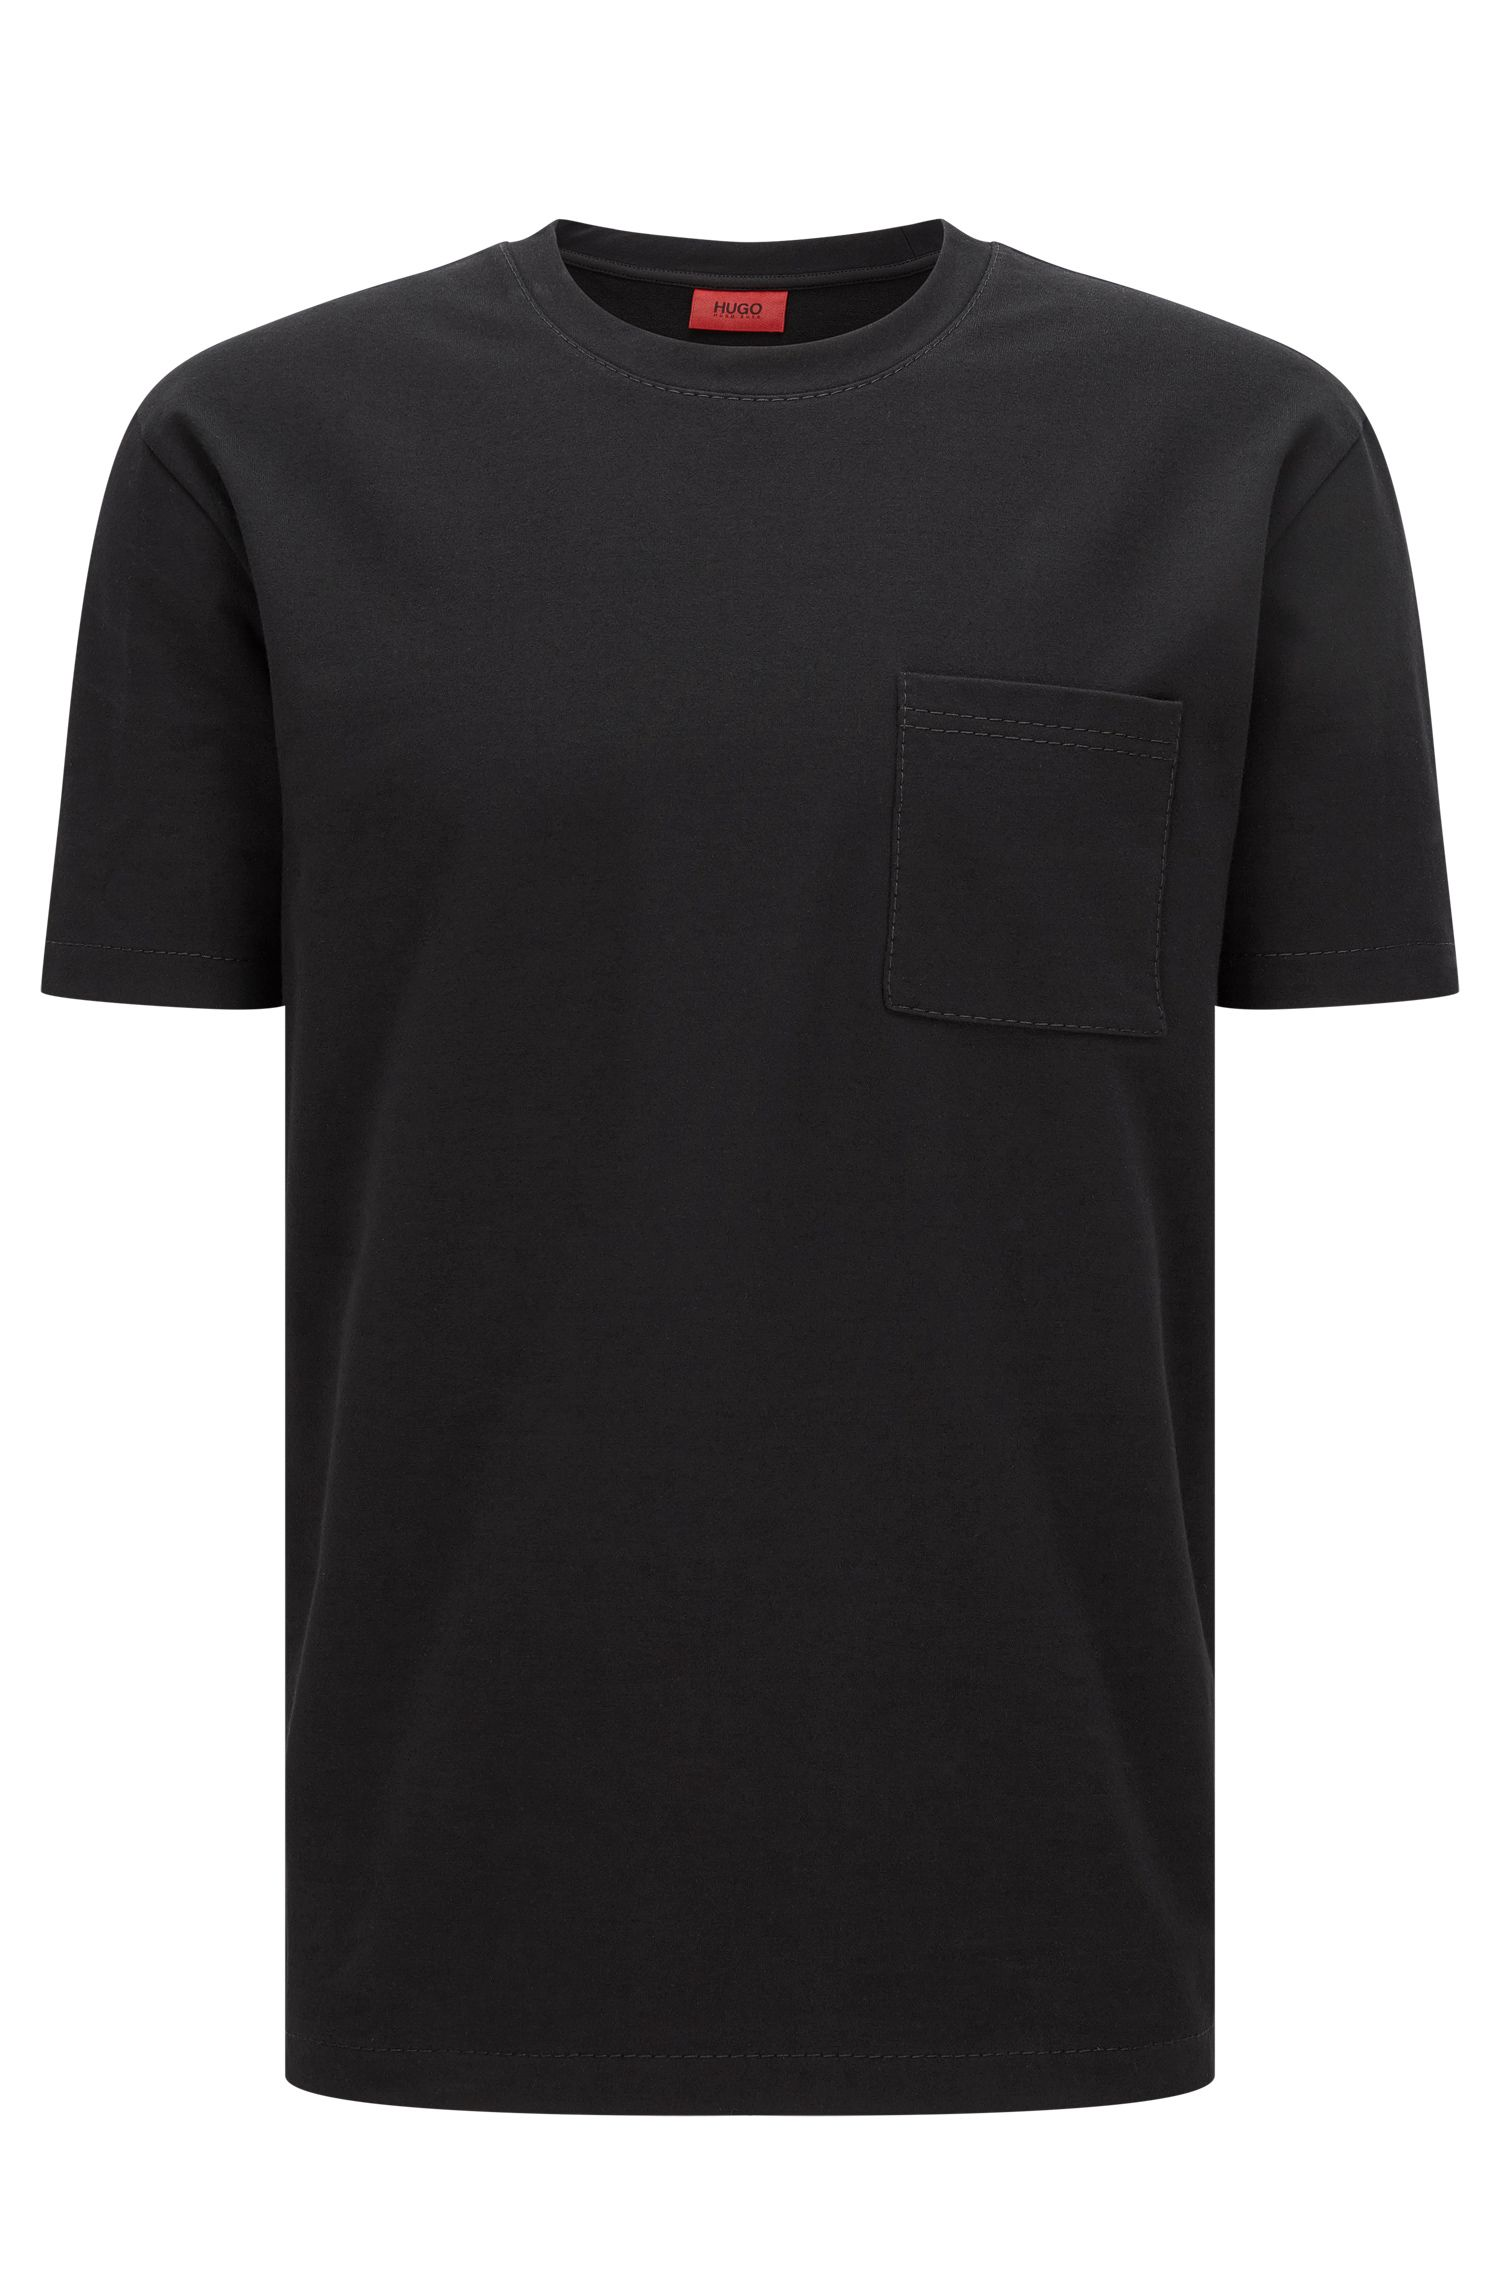 Relaxed-Fit T-Shirt aus softer Stretch-Baumwolle mit Naht-Details